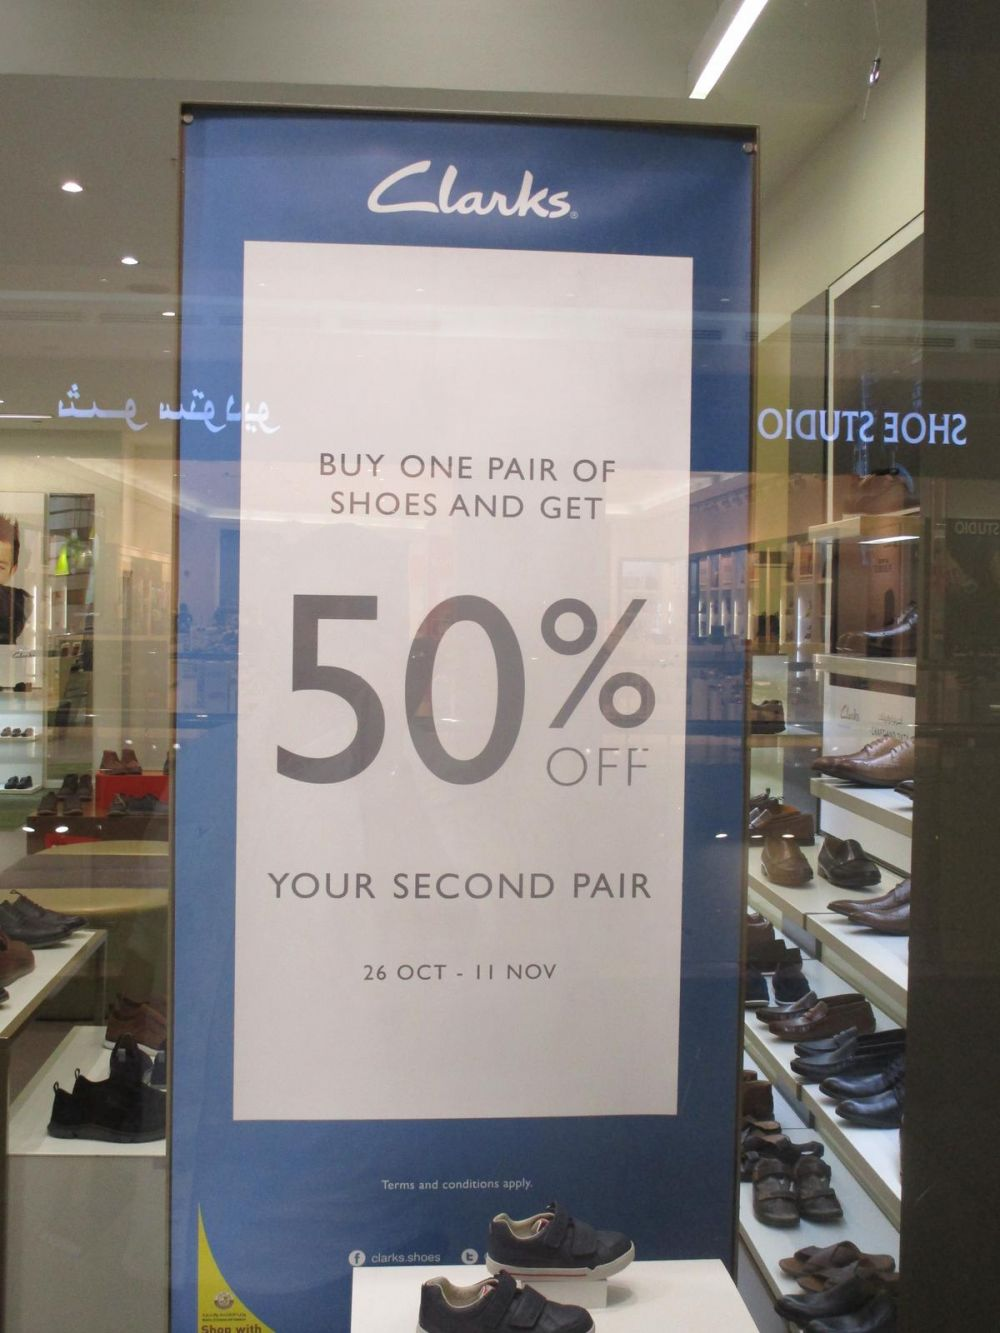 f5dce7a03330 Special Offer - Clarks Qatar - 4939